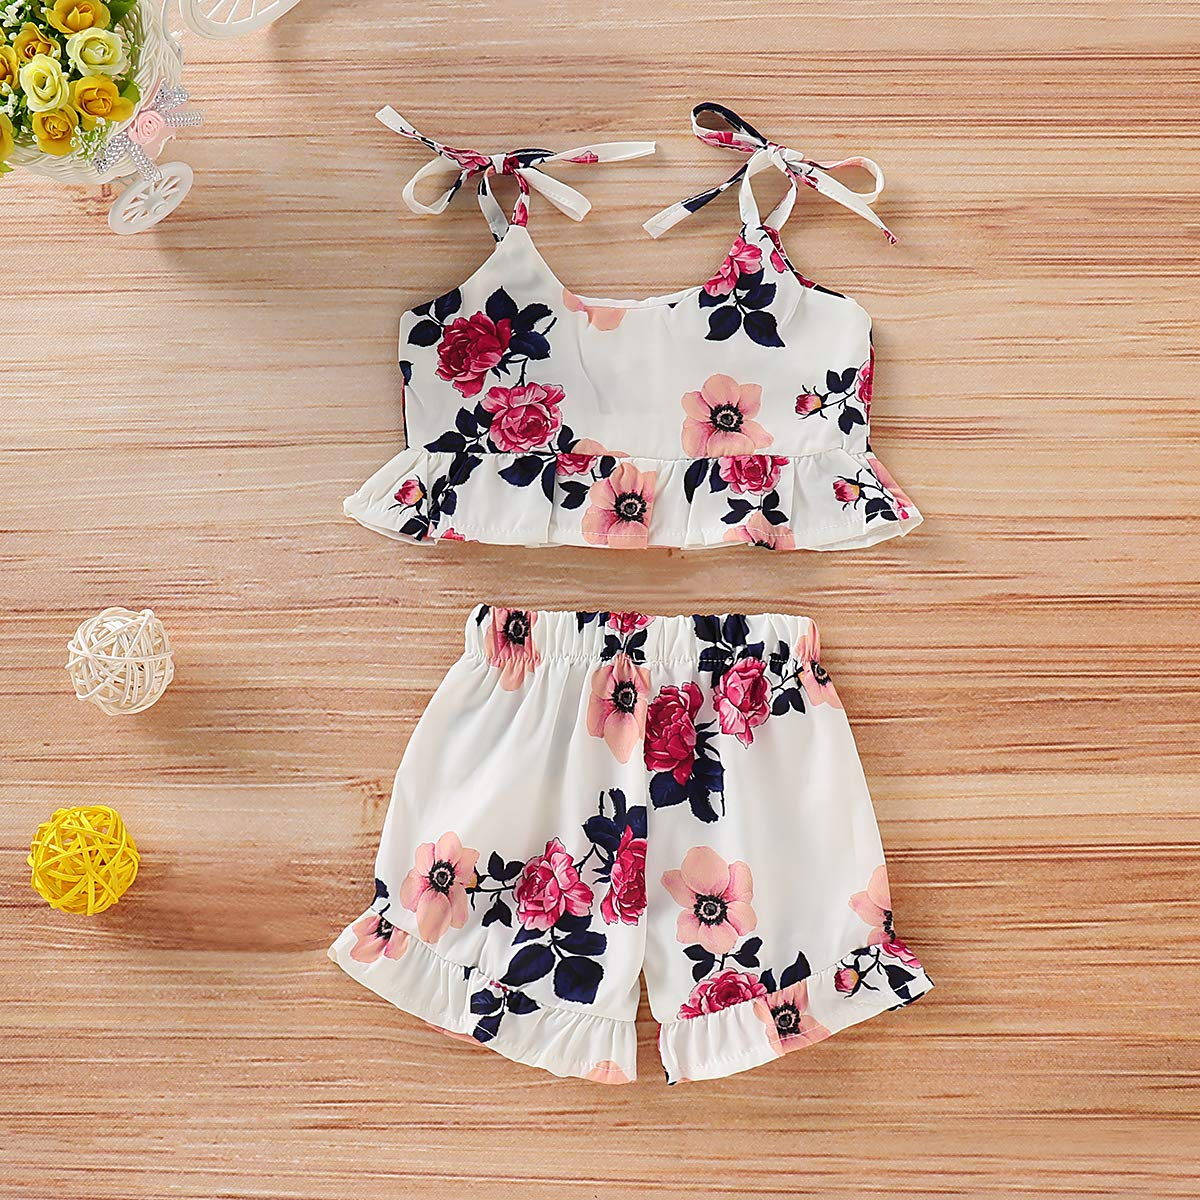 2bbac2a77b2 Amazon.com  Toddler Baby Girl Floral Halter Ruffled Outfits Set Strap Crop  Tops+Short Pants 2 PCS Clothes Set  Clothing